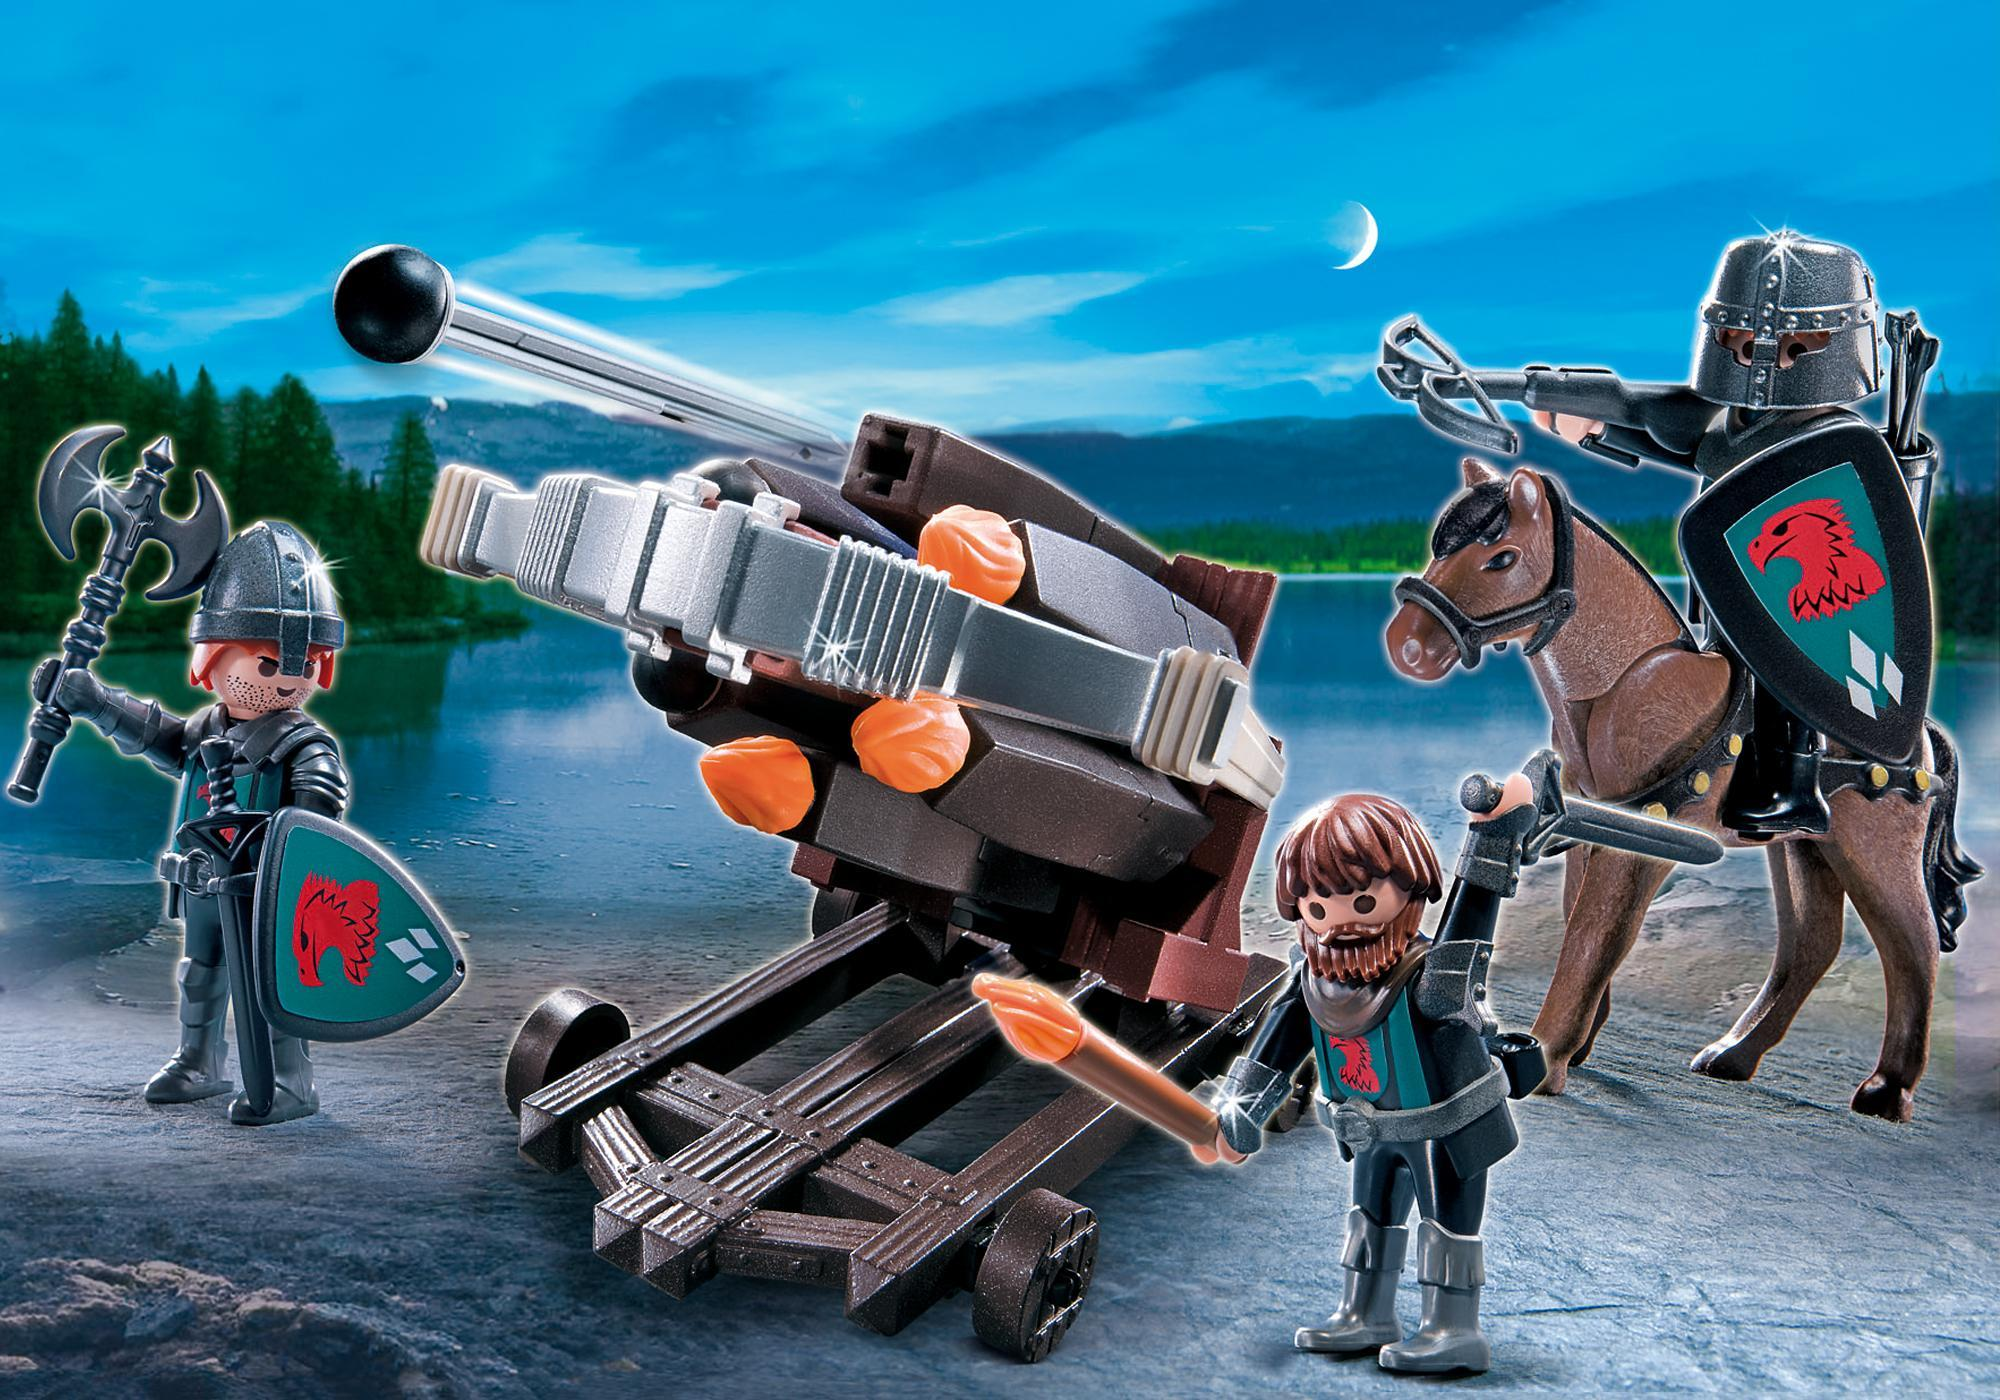 http://media.playmobil.com/i/playmobil/4868_product_extra1